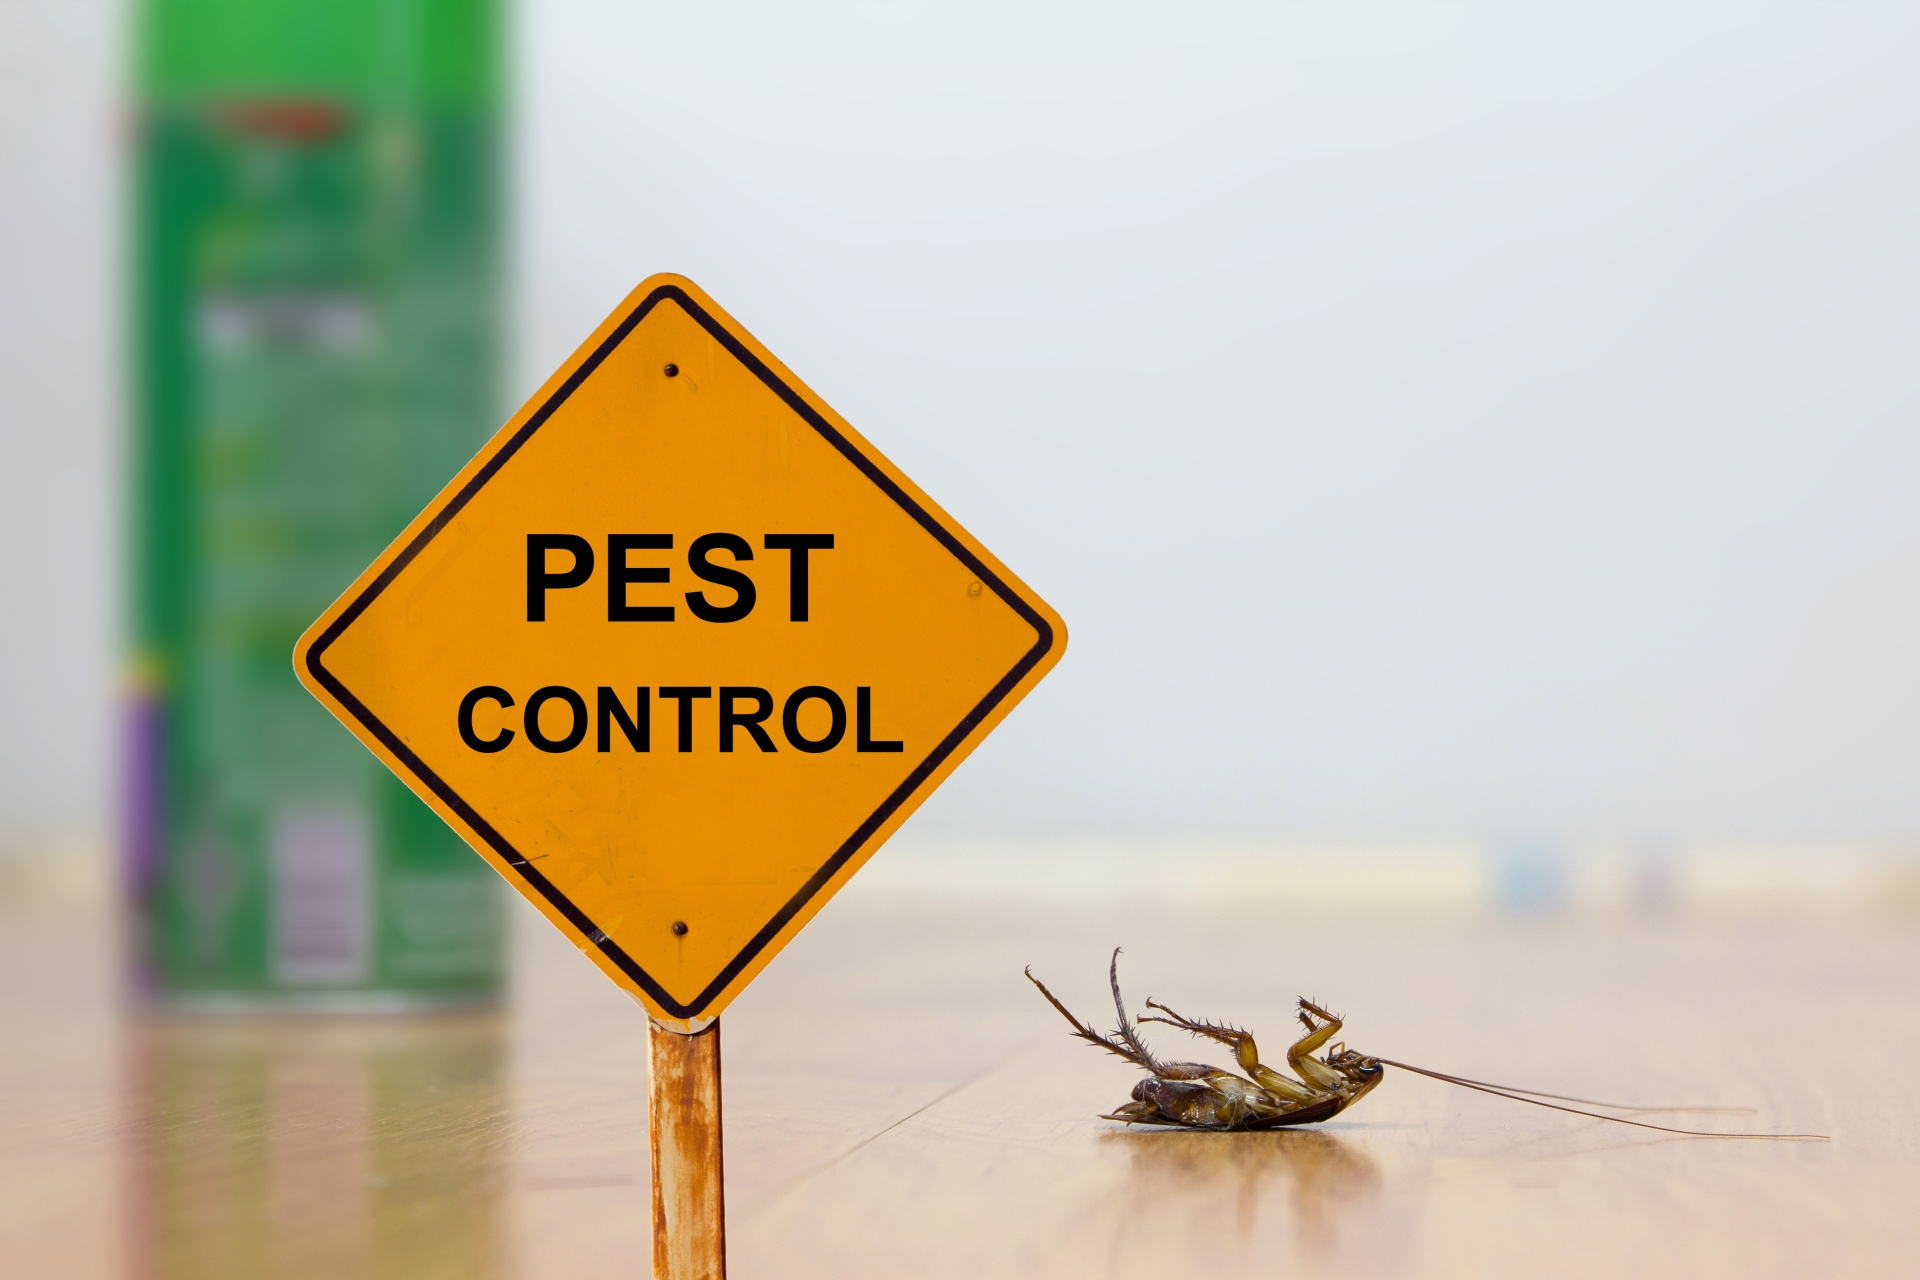 24 Hour Pest Control, Pest Control in Ashtead, KT21. Call Now 020 8166 9746